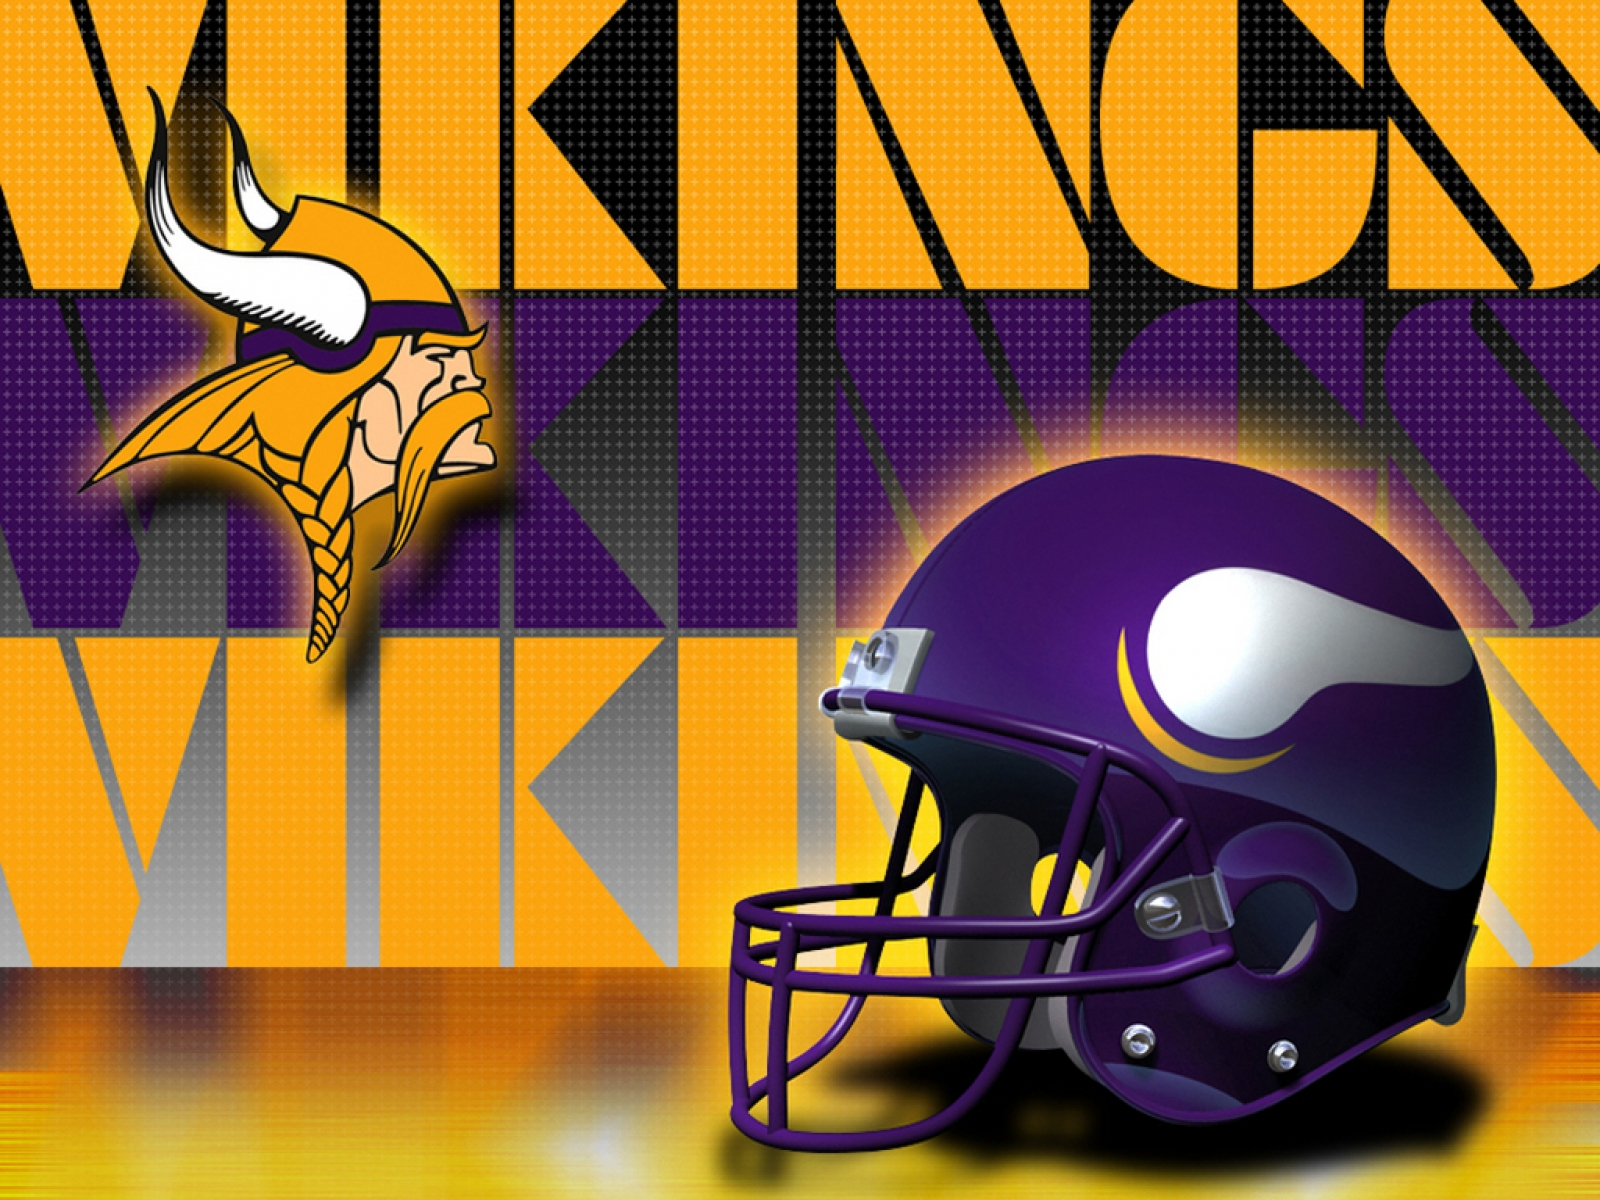 Minnesota Vikings Helmet Side 16001200 Digital Citizen